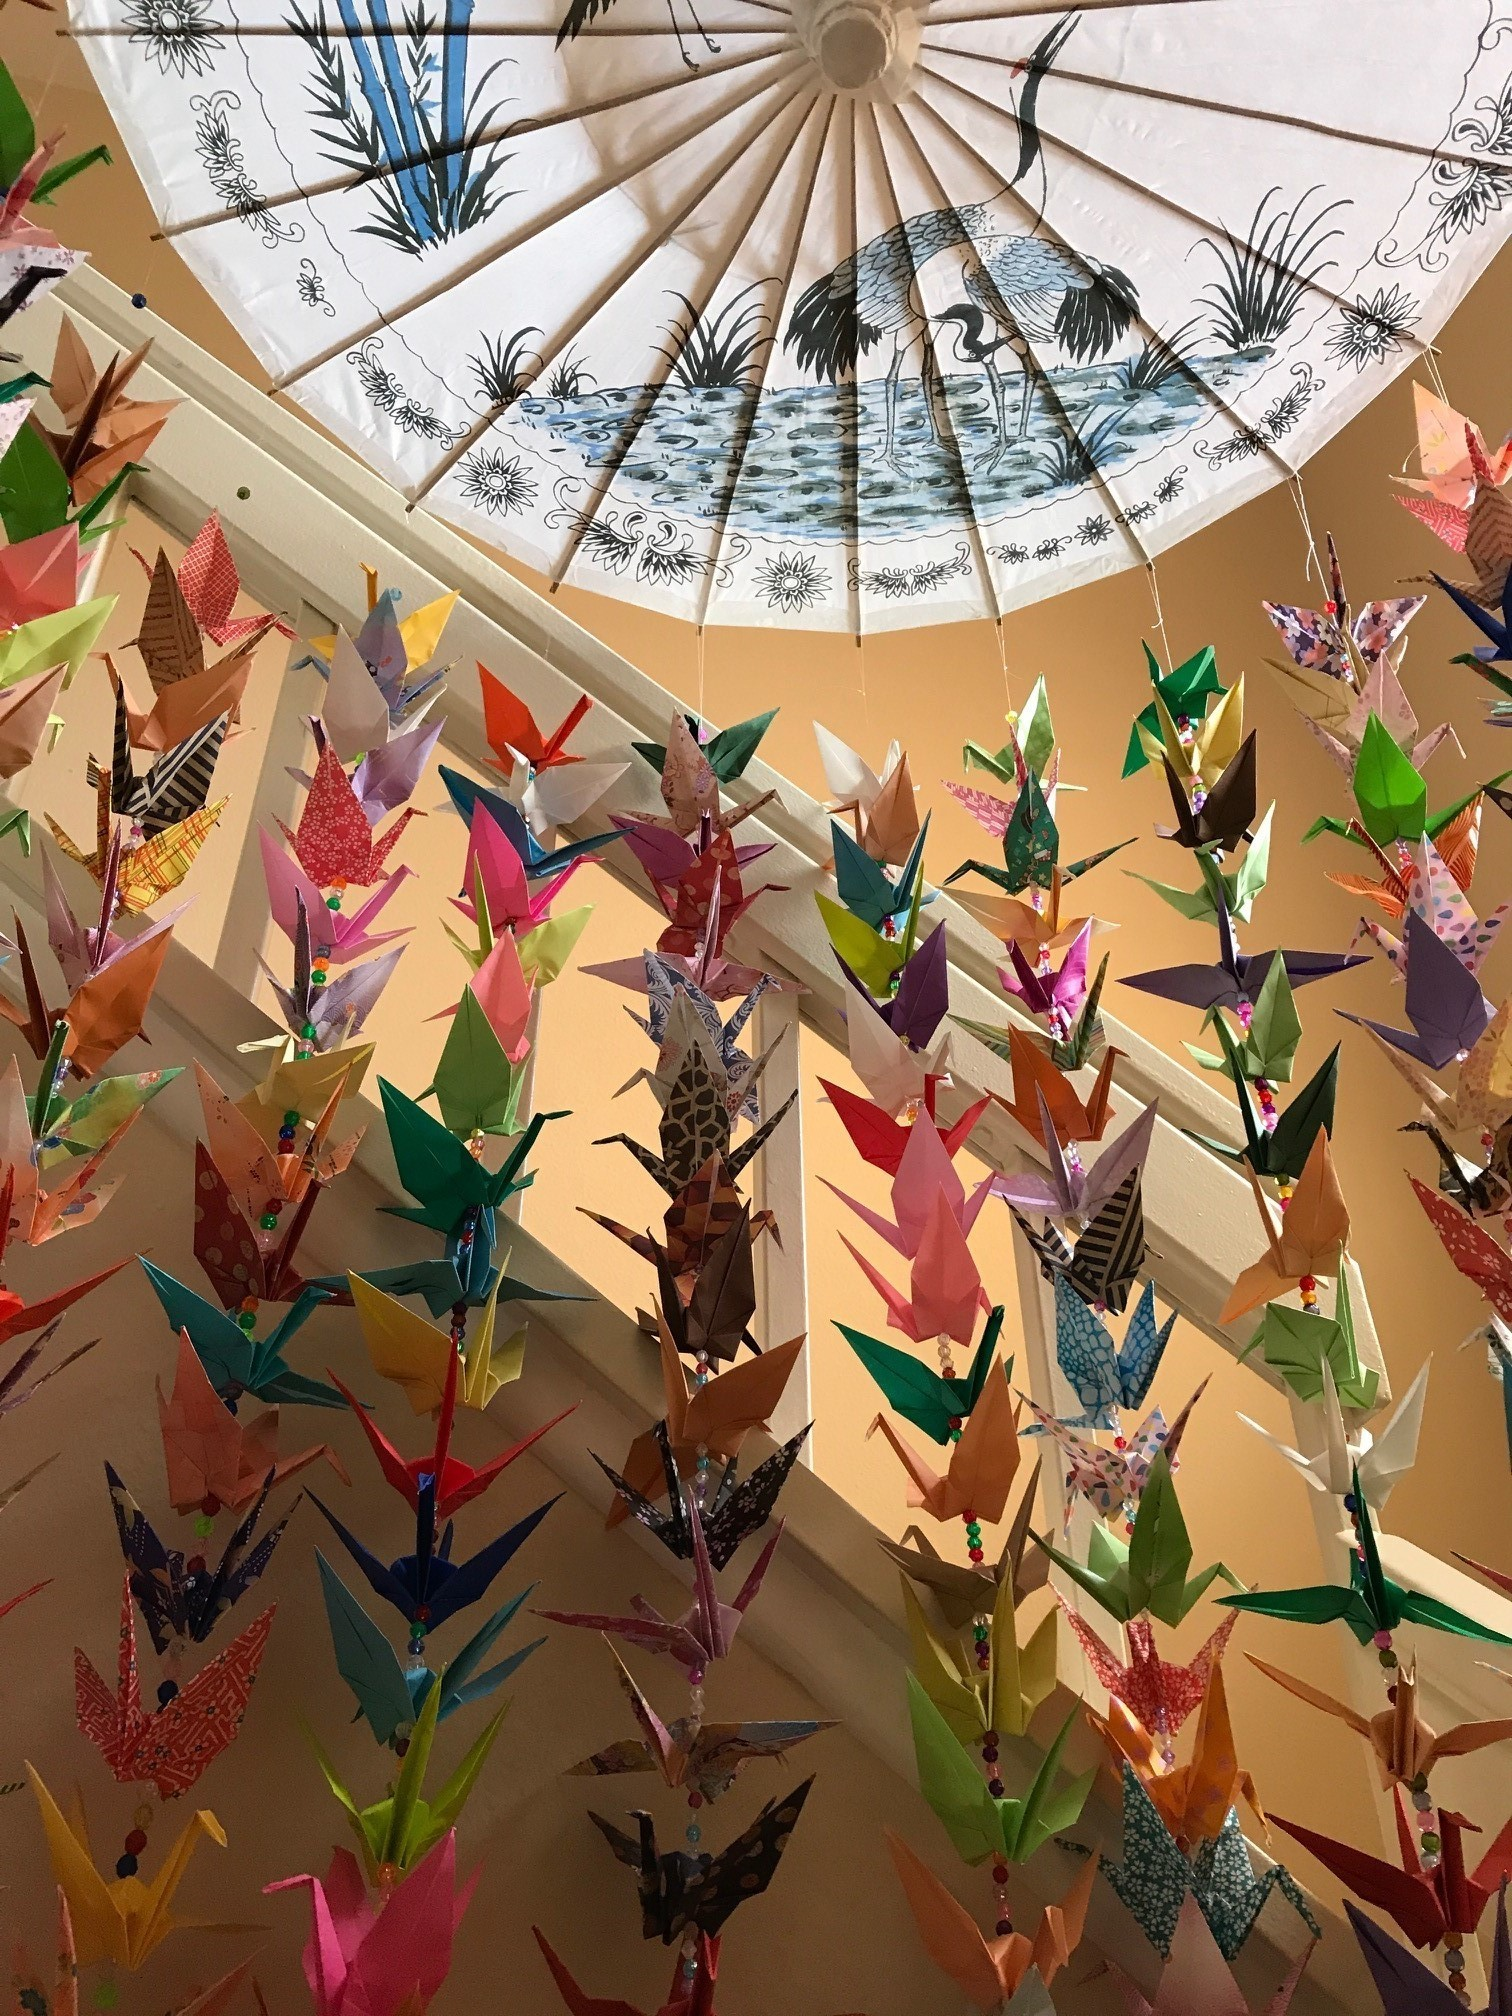 Kathy Liu's Cranes for a Cure will be on display at the New Children's Museum Sept. 6-Oct. 7.